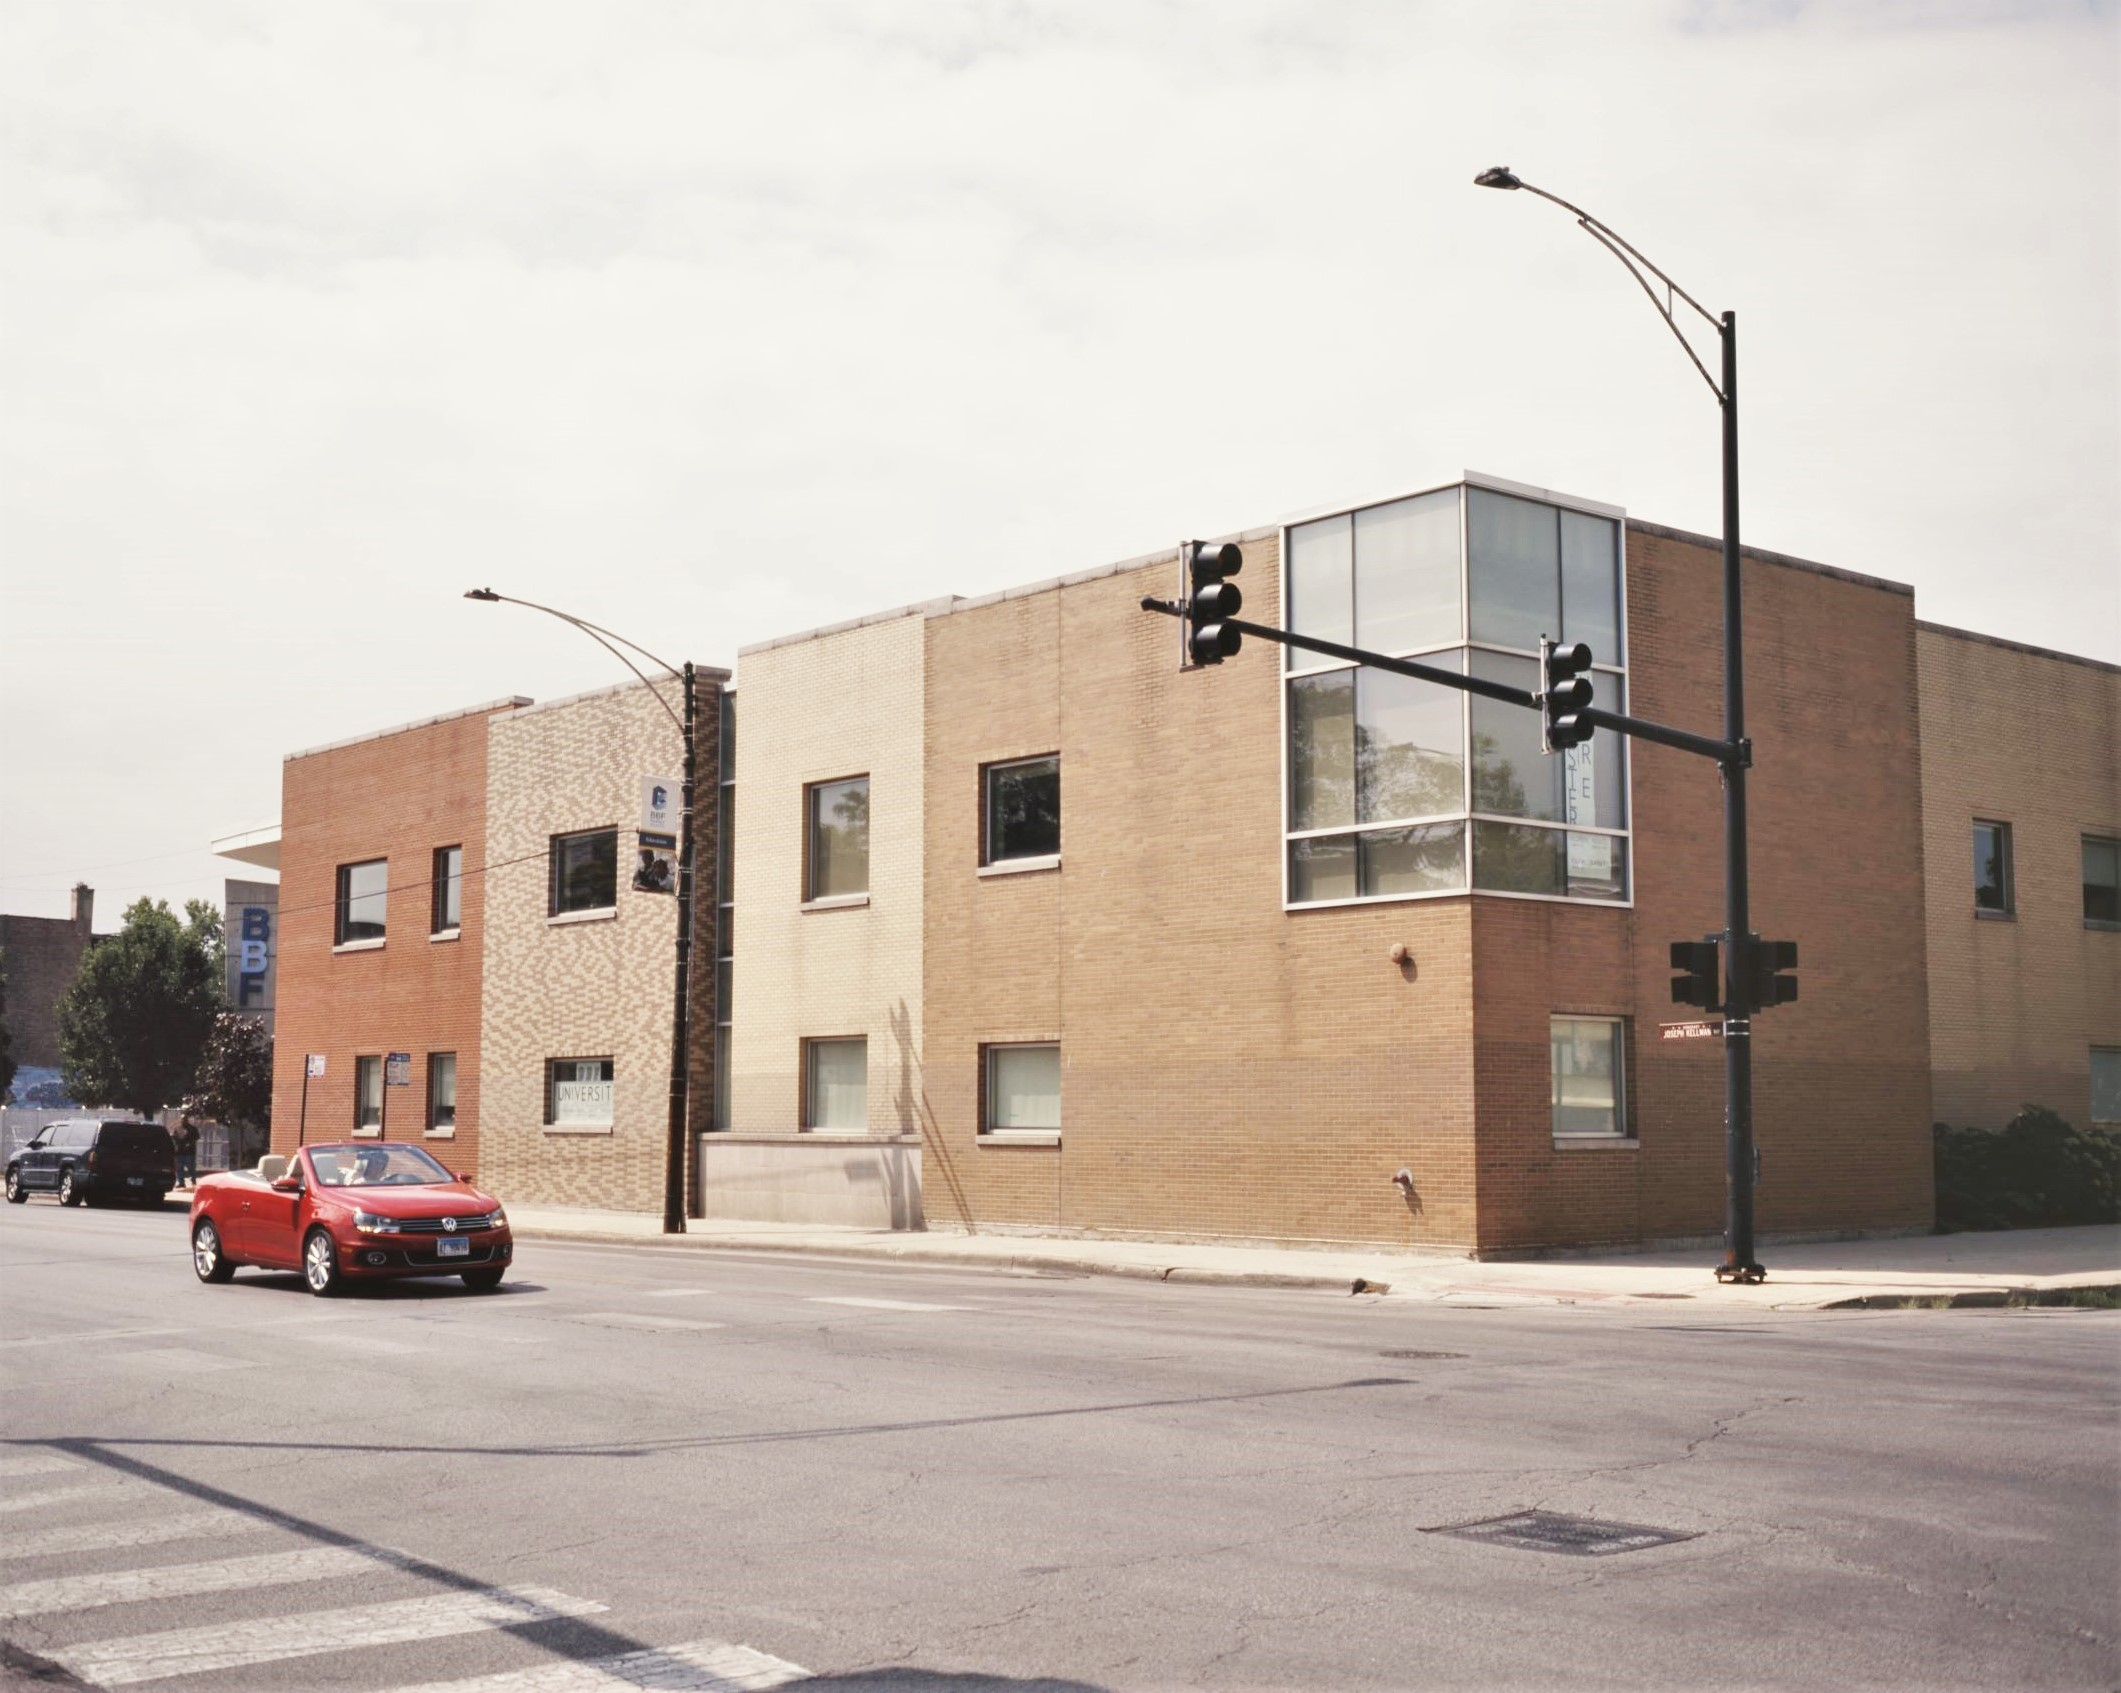 Image: The BBF Family Services Center, seen on a sunny day from the NE corner of 15th and Pulaski in North Lawndale. Designed by architect Lucien Lagrange, the building's long, two-story play-block facade varies in dimension and brick pattern from end to end. A red Volkswagen cabriolet with the top down is stopped momentarily at the light in front of the building. Photo by Eric K. Roberts.